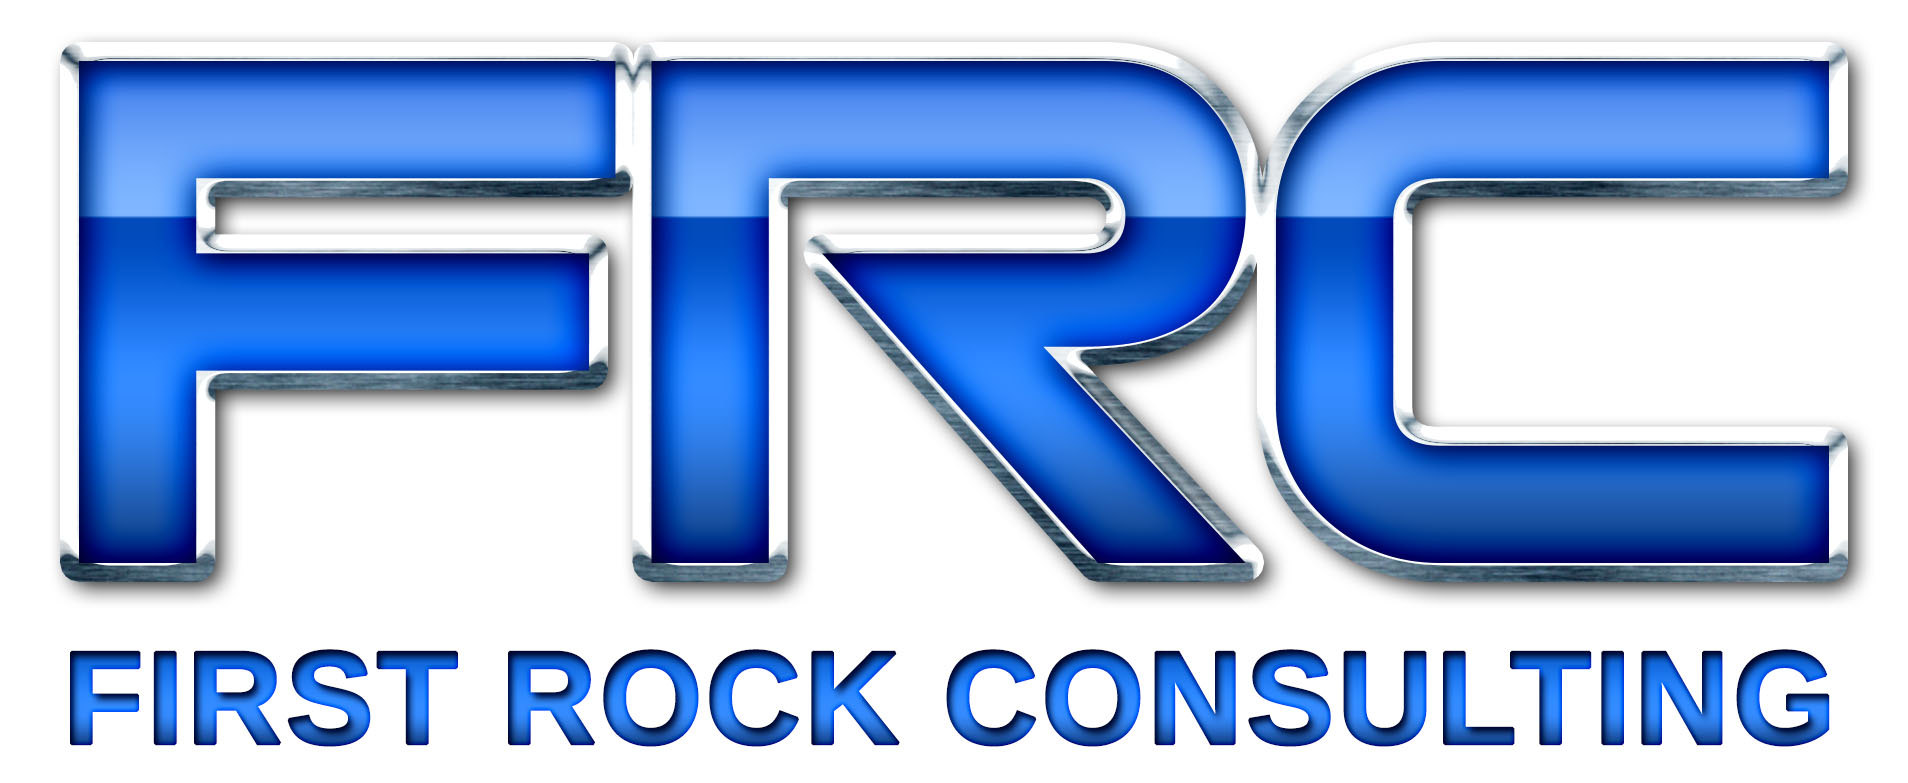 First Rock Consulting